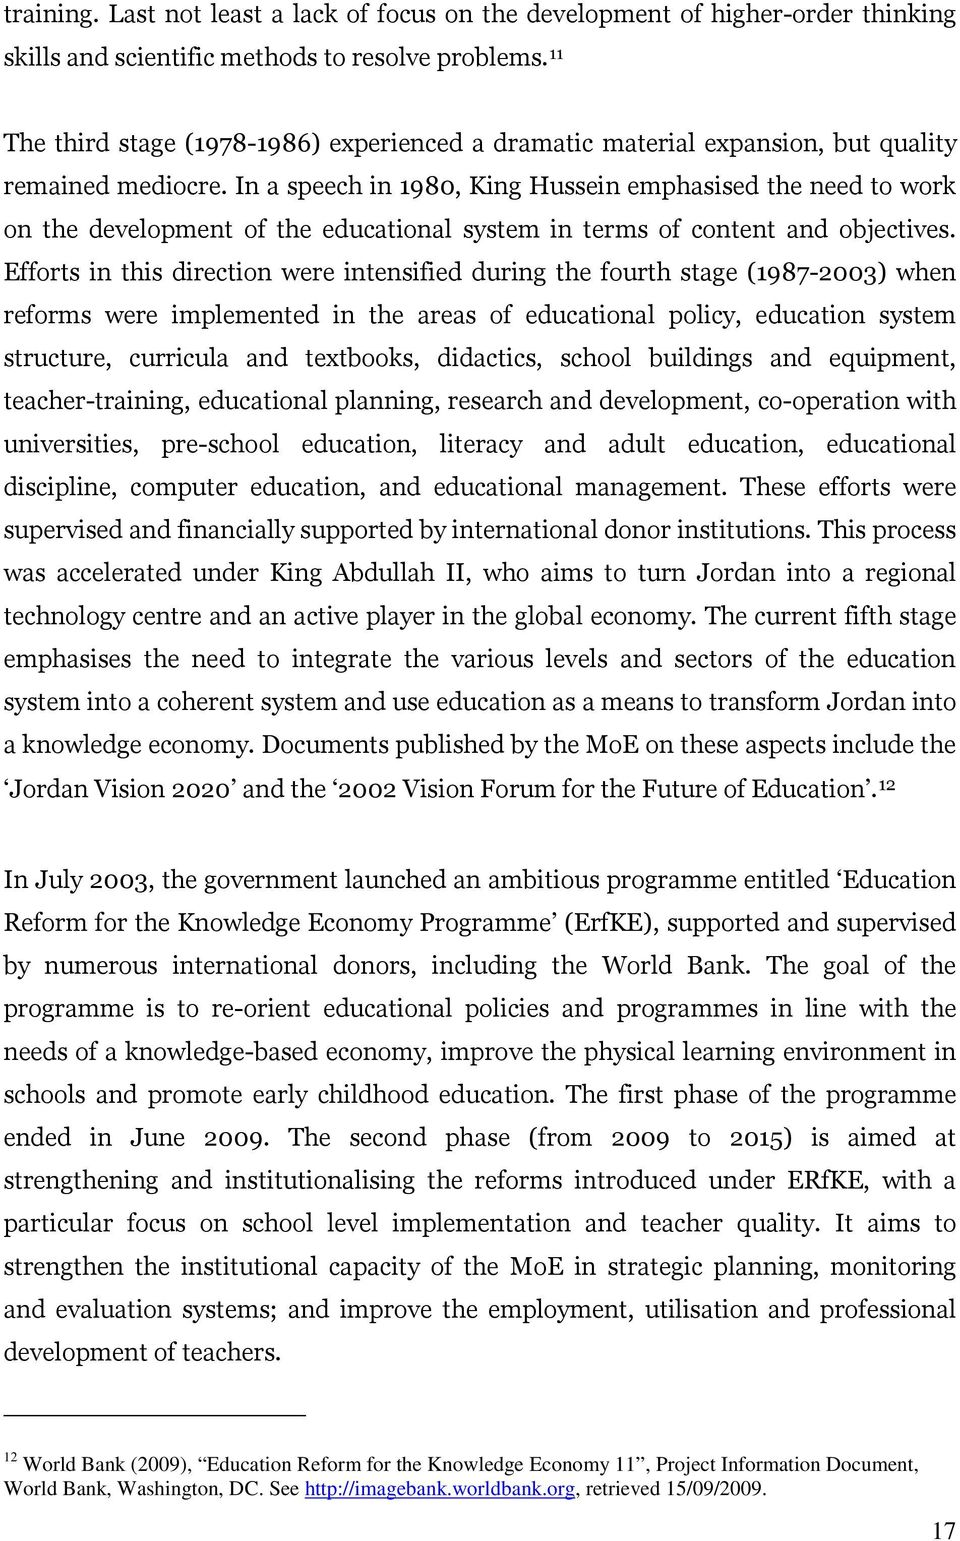 In a speech in 1980, King Hussein emphasised the need to work on the development of the educational system in terms of content and objectives.